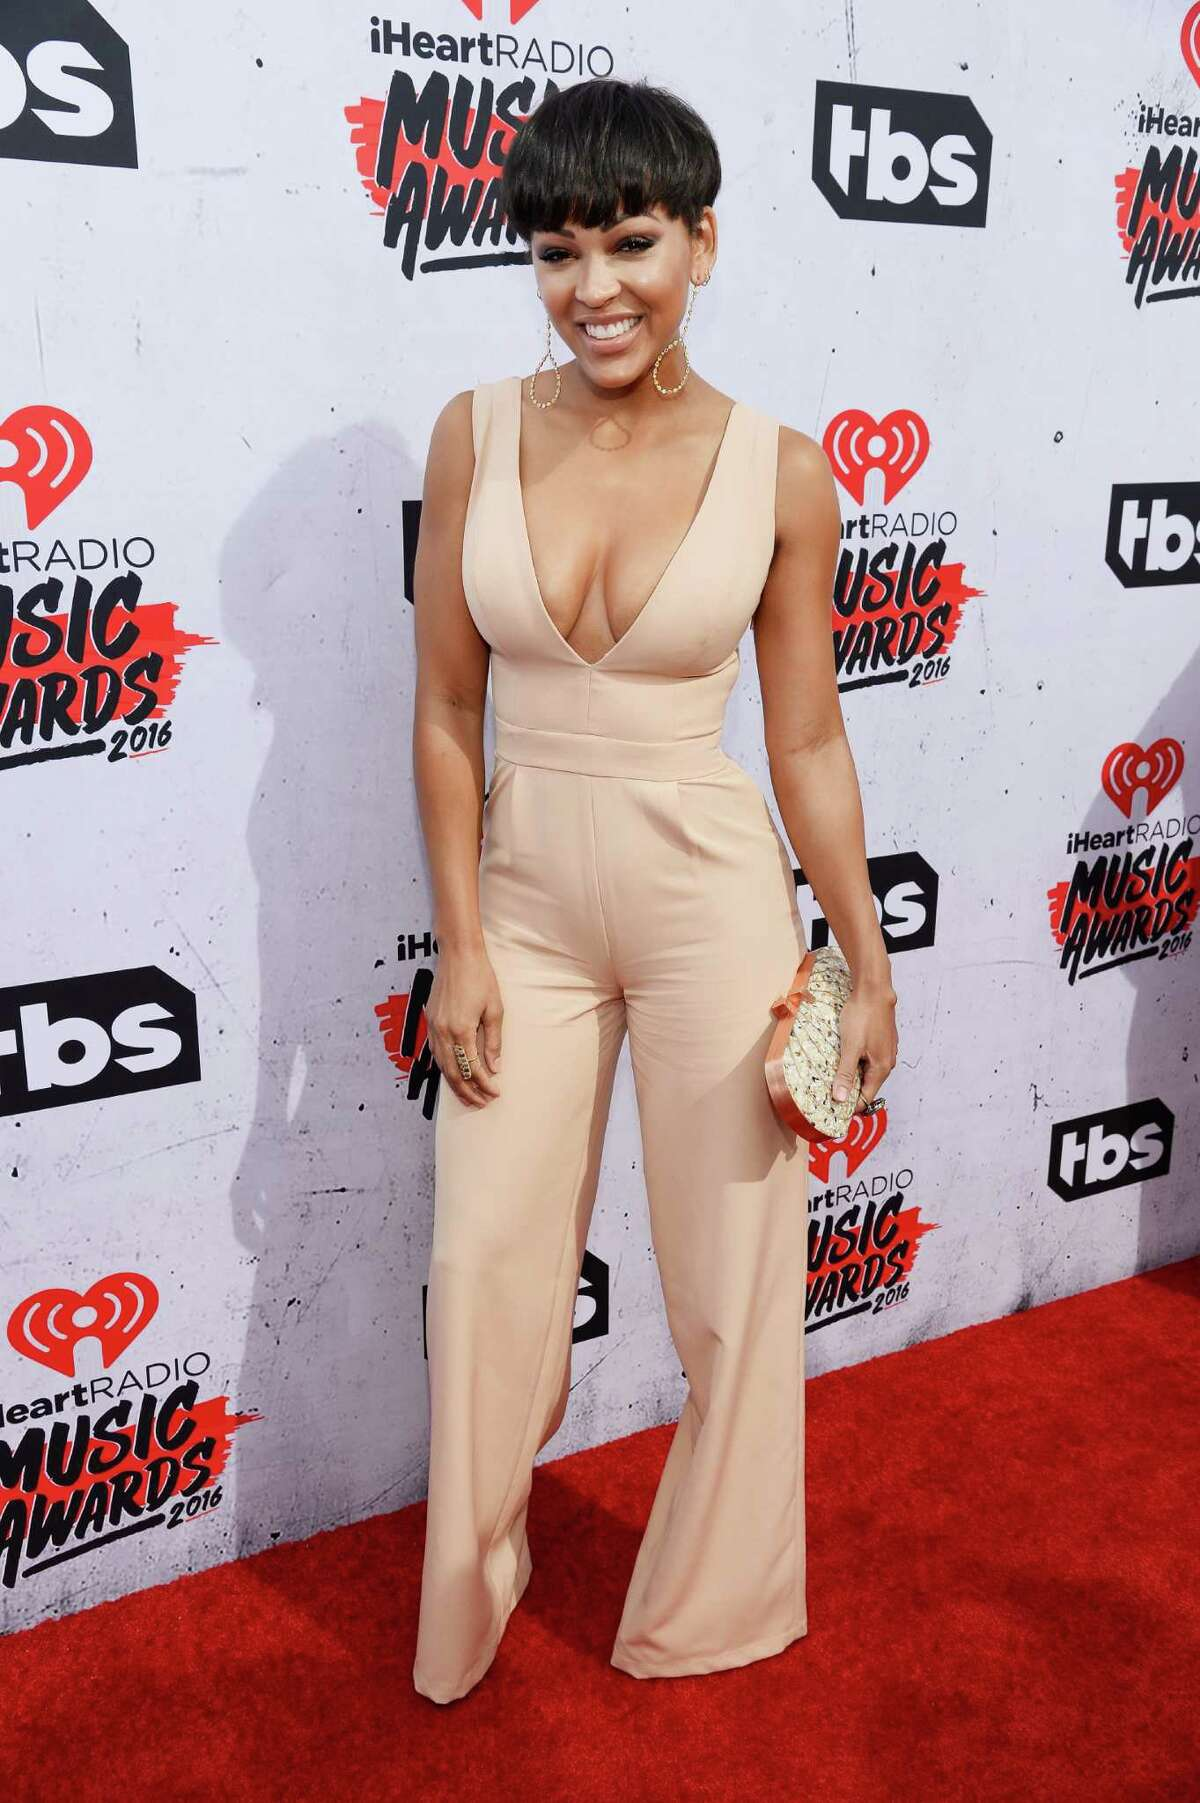 INGLEWOOD, CALIFORNIA - APRIL 03: Actress Meagan Good attends the iHeartRadio Music Awards at The Forum on April 3, 2016 in Inglewood, California.